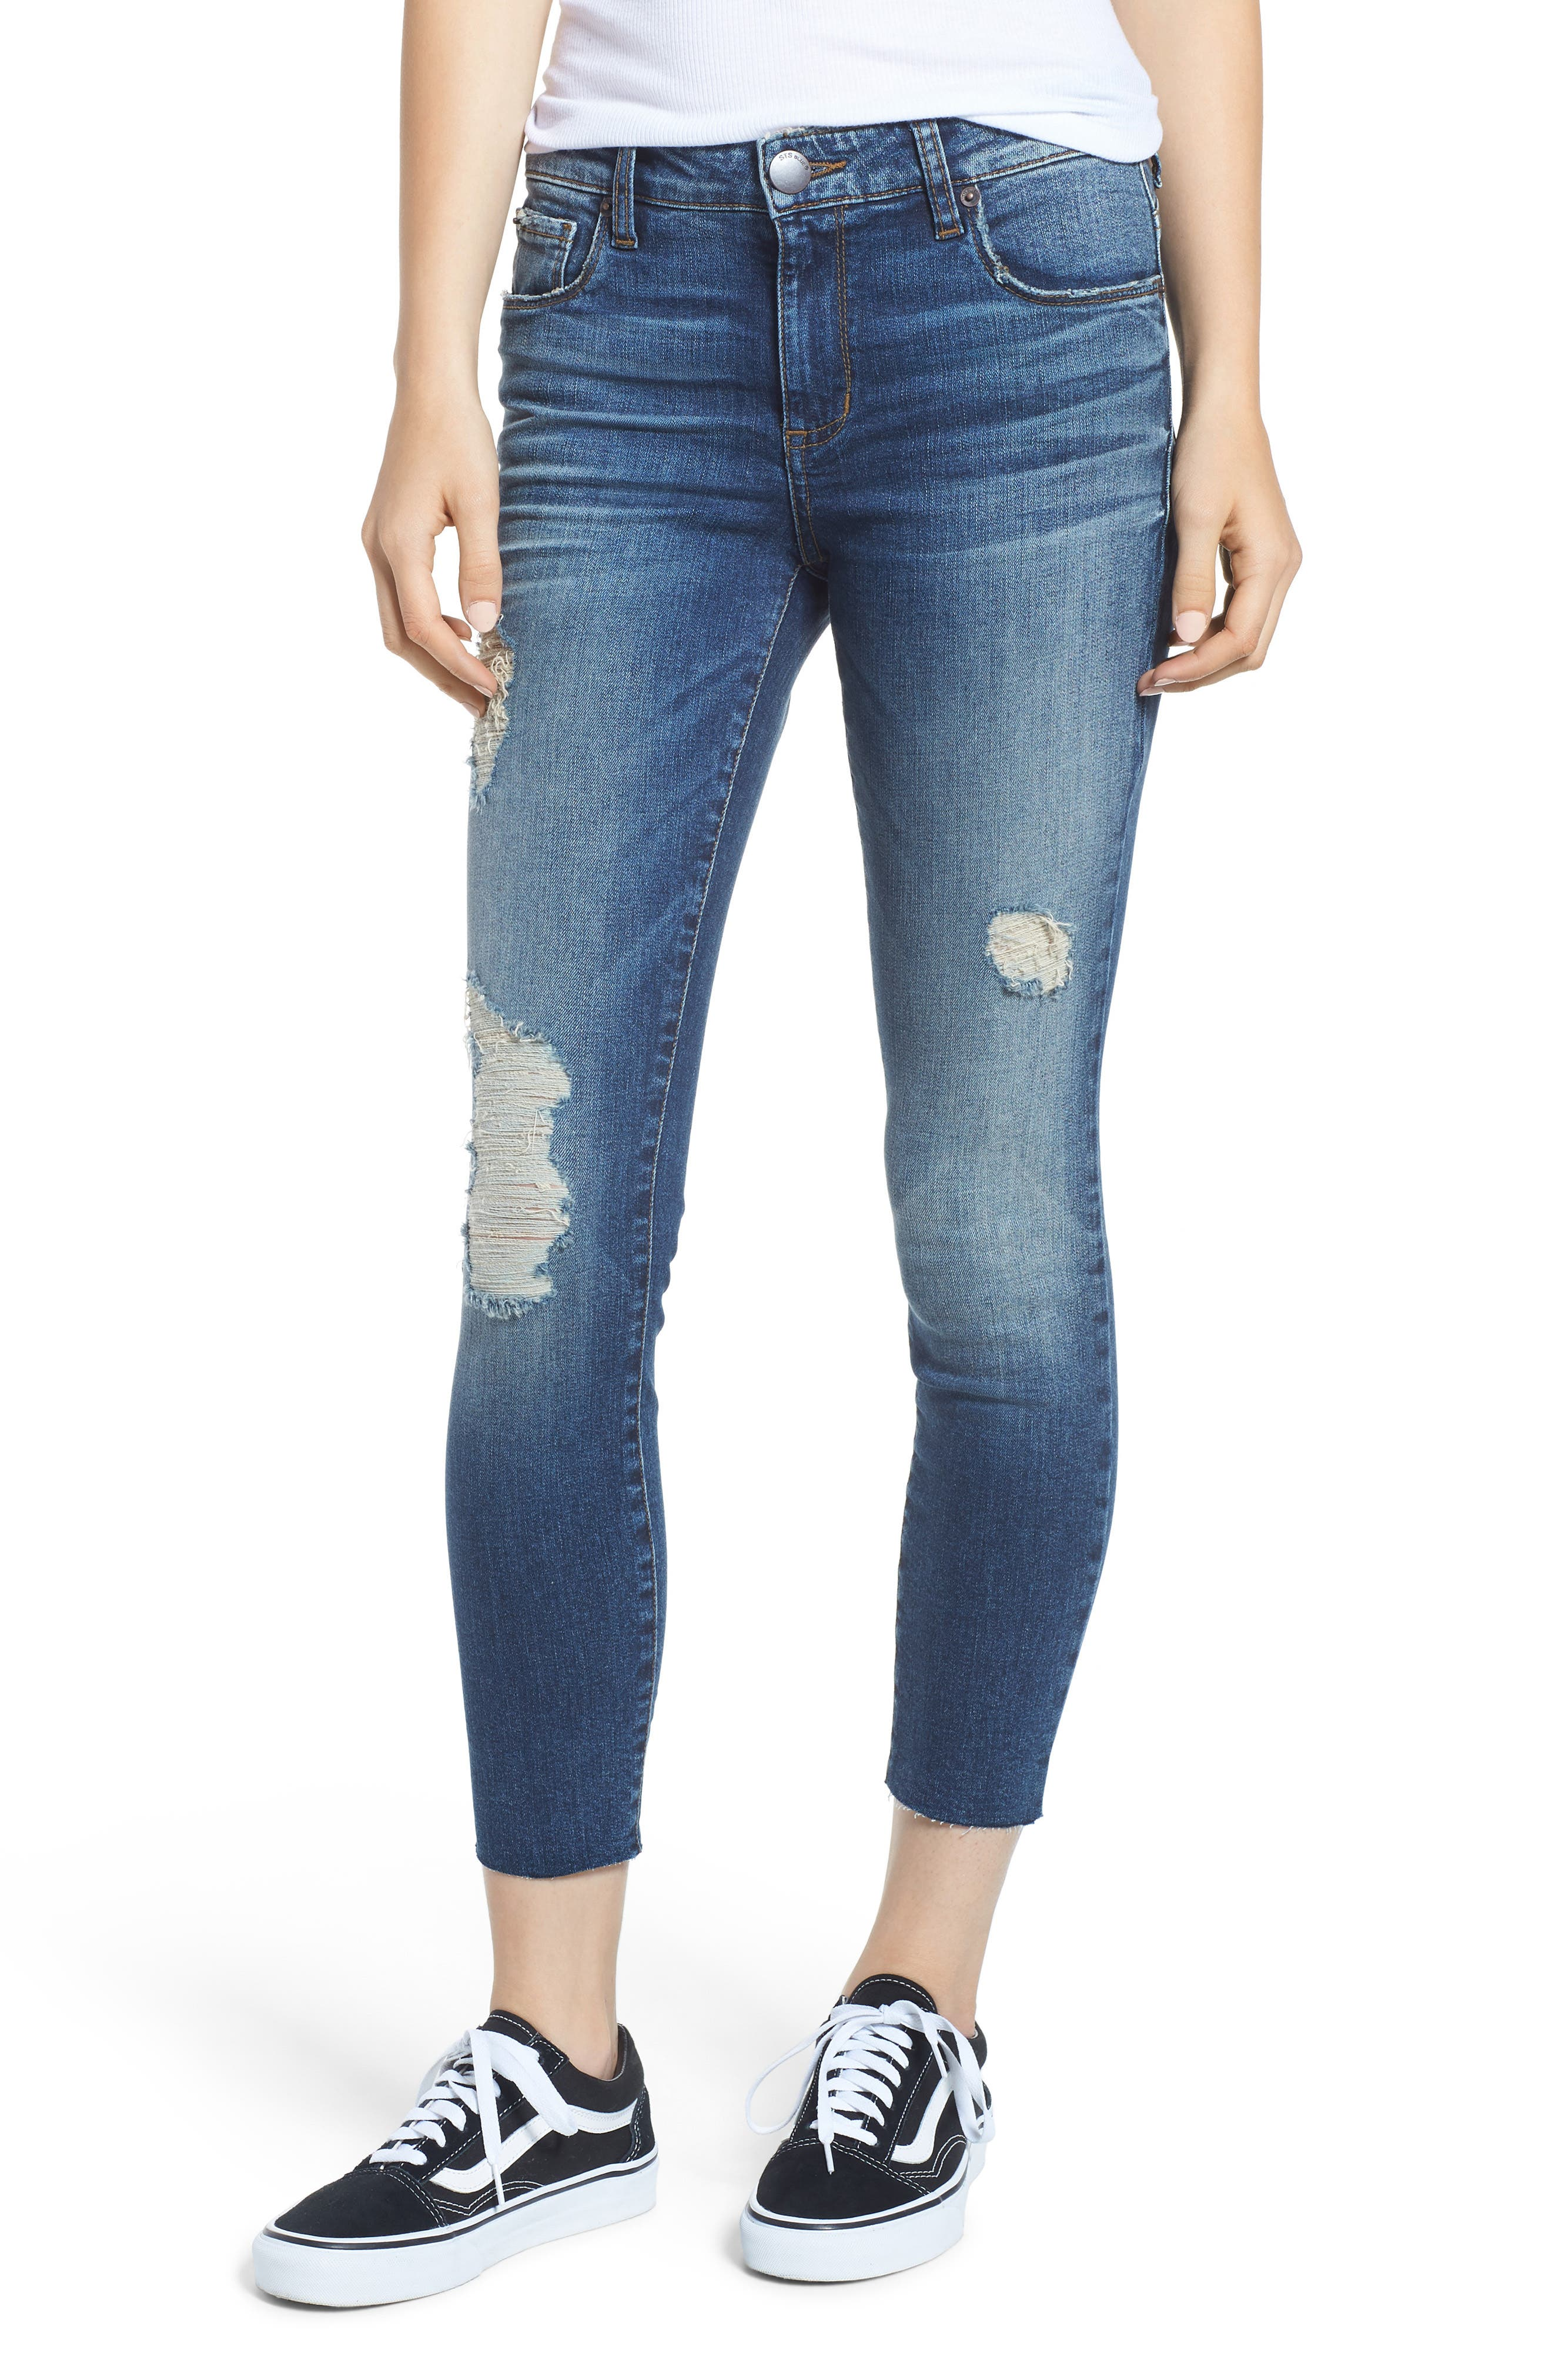 STS Blue Ripped Cutoff Crop Skinny Jeans,                             Main thumbnail 1, color,                             FLORA W/ DK BASE